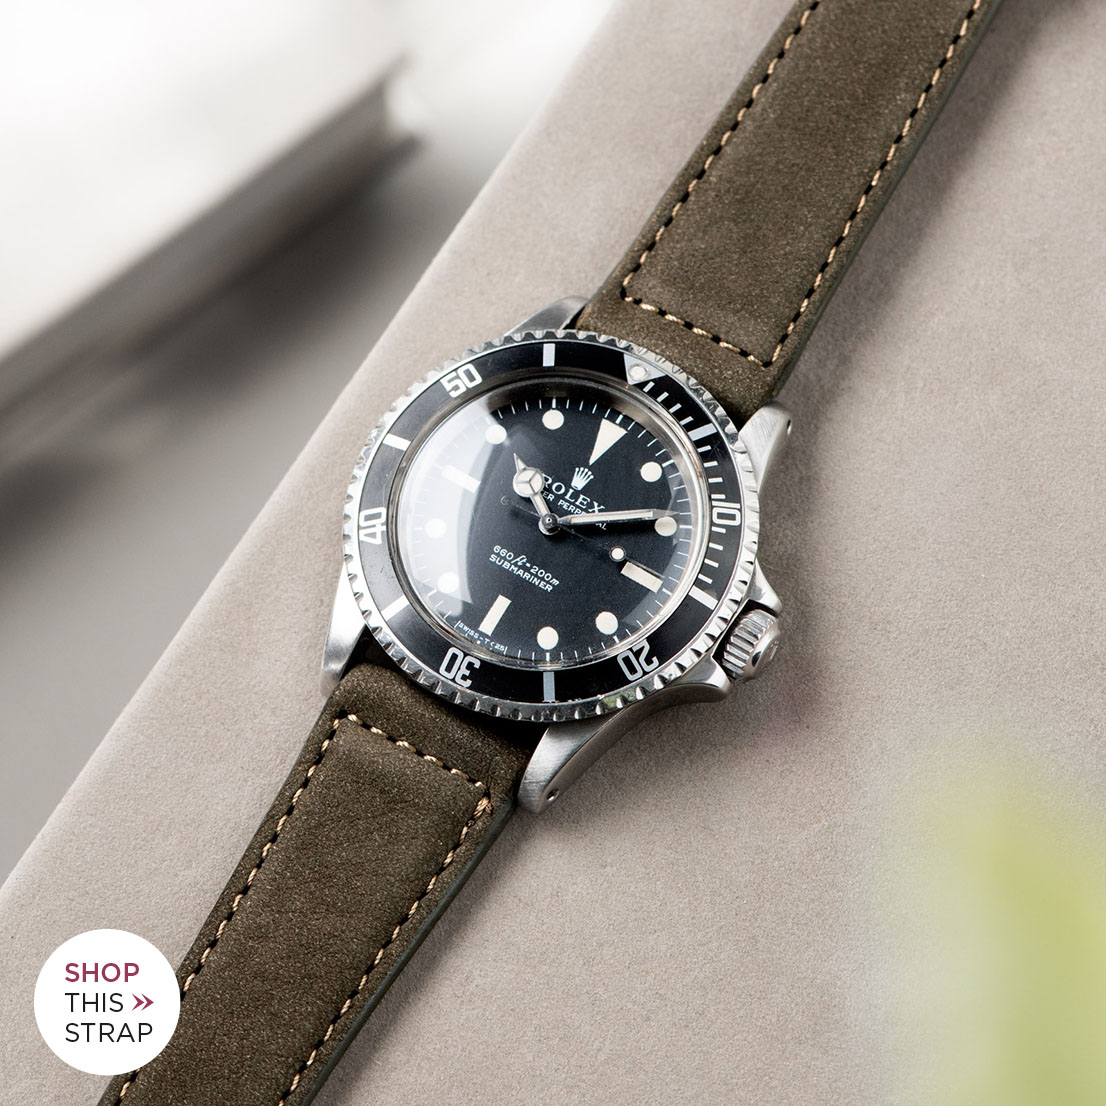 Bulang and Sons_Strap Guide_Rolex 5513 Submariner_DARK OLIVE GREEN NUBUCK LEATHER WATCH STRAP